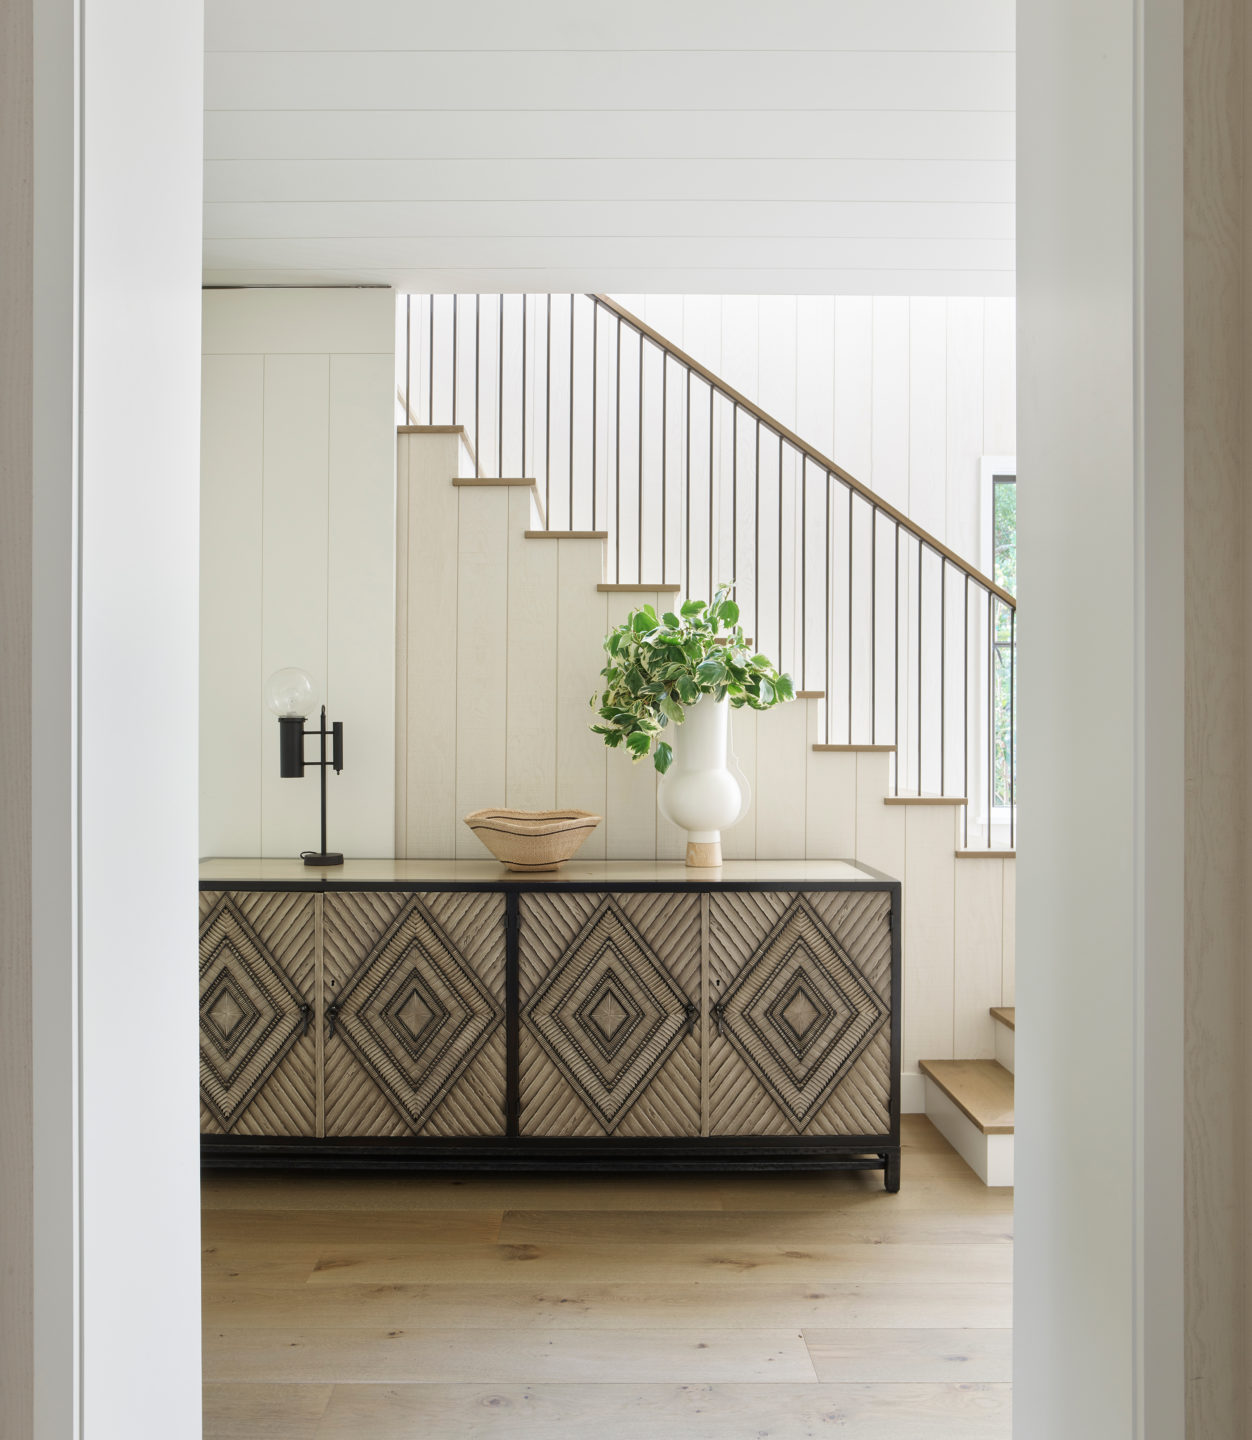 Jennifer_robins_interiors_projects_pacific_heights_portola_valley_entryway_hallway_stairs_Portola_25_HR